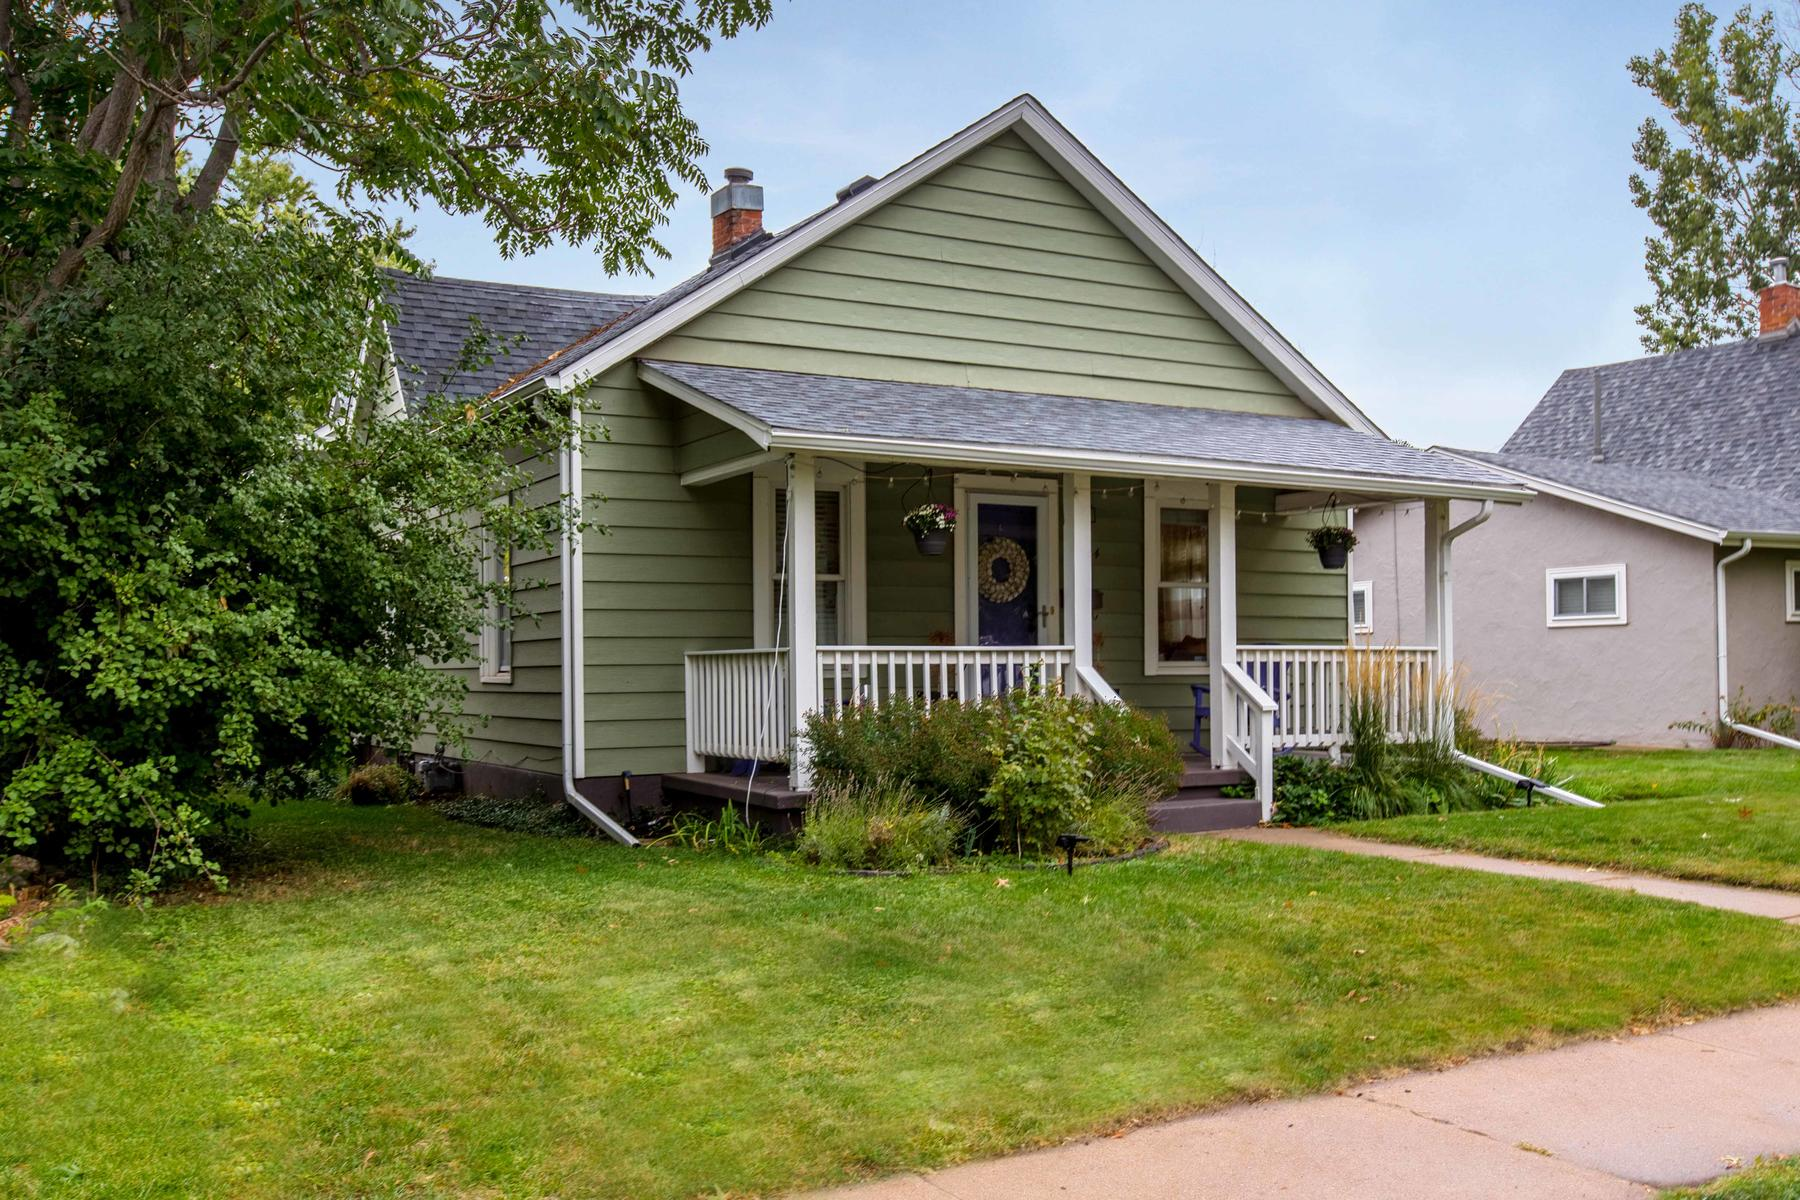 Single Family Home for Active at This is the meticulously updated Regis/Berkeley home you've been awaiting 4954 Newton Street Denver, Colorado 80221 United States